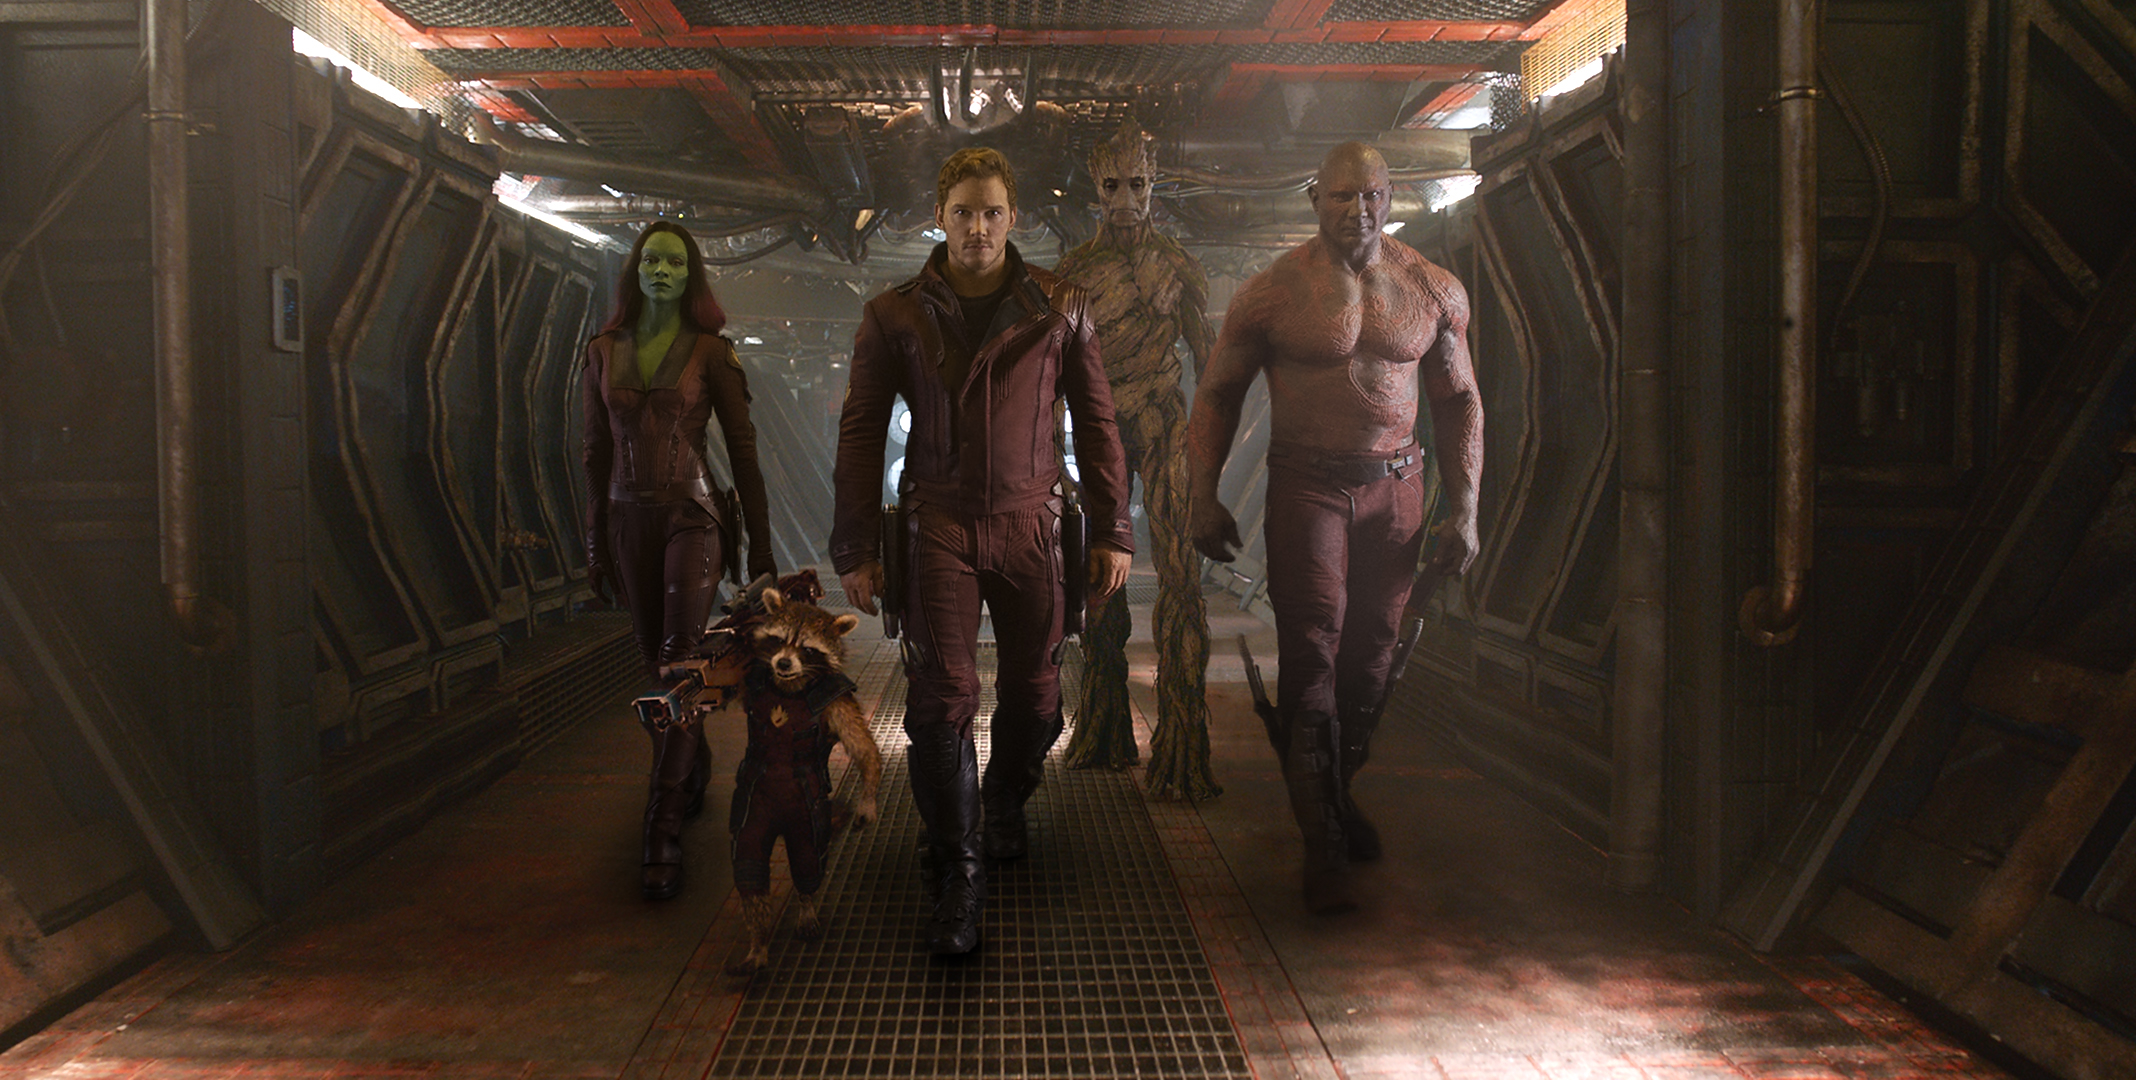 XXX GUARDIANS-GALAXY-MOV-JY-0704.JPG A ENT